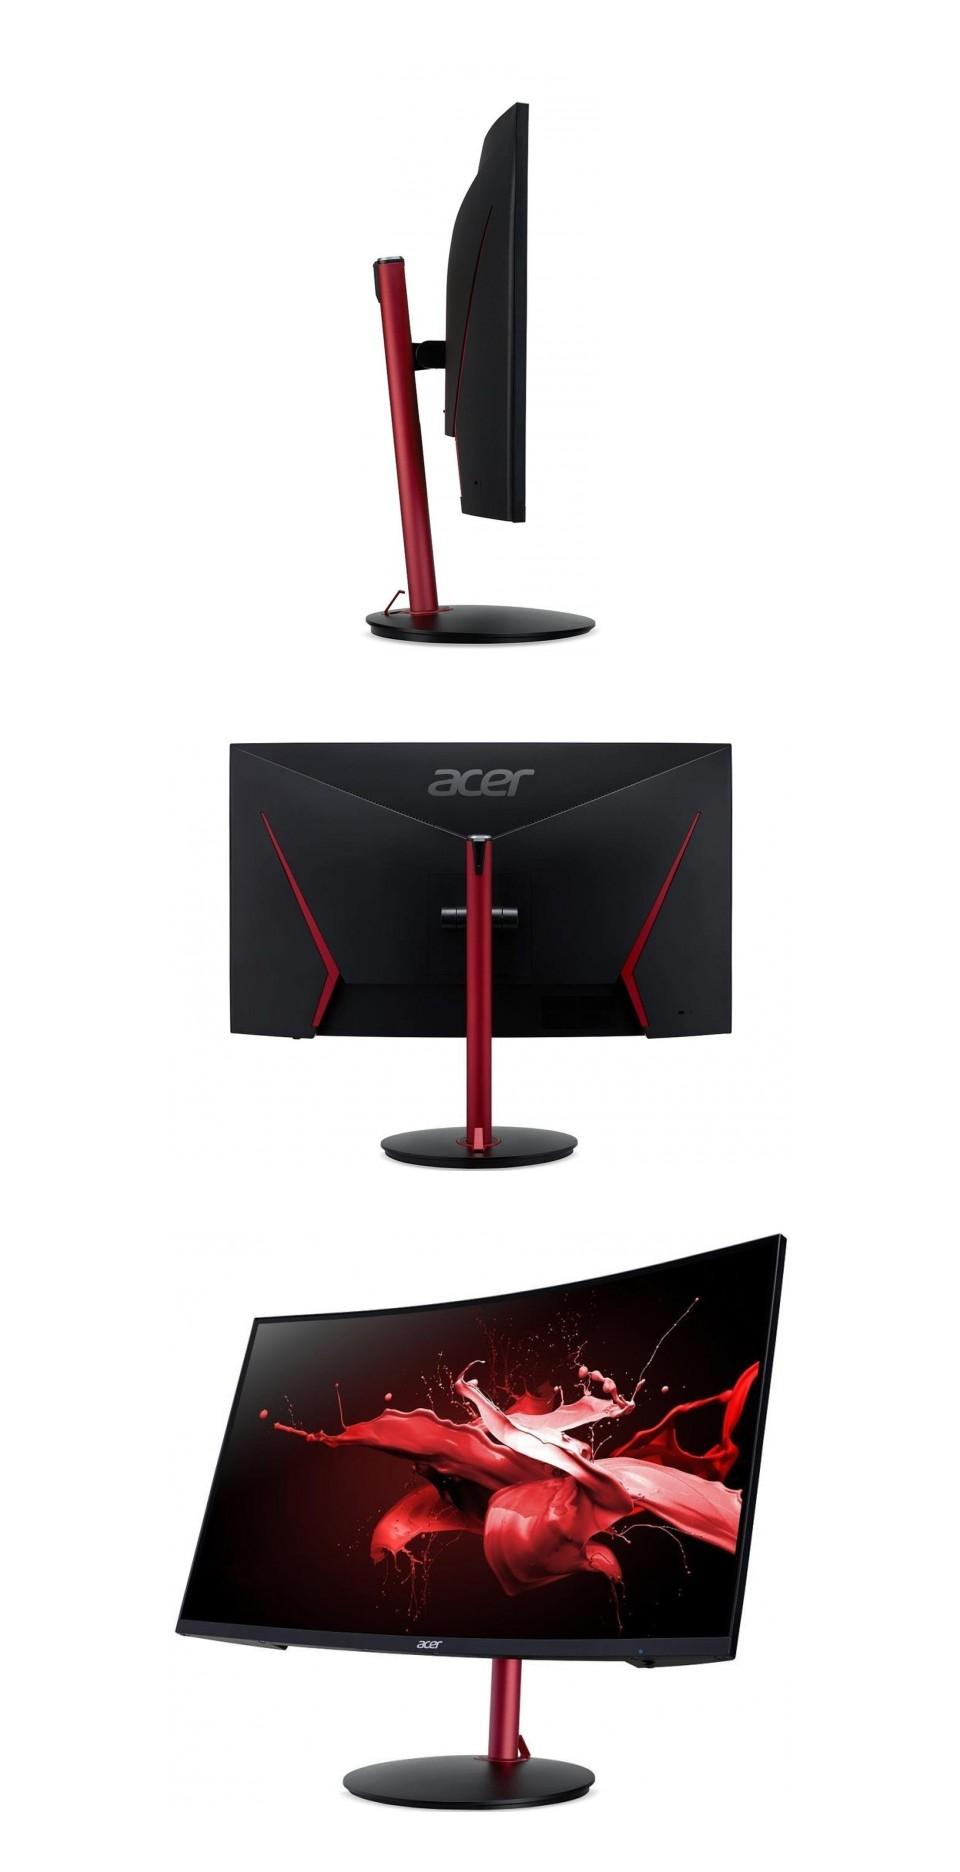 Acer Nitro XZ272P 165Hz FreeSync Curved HDR IPS 27in Monitor product